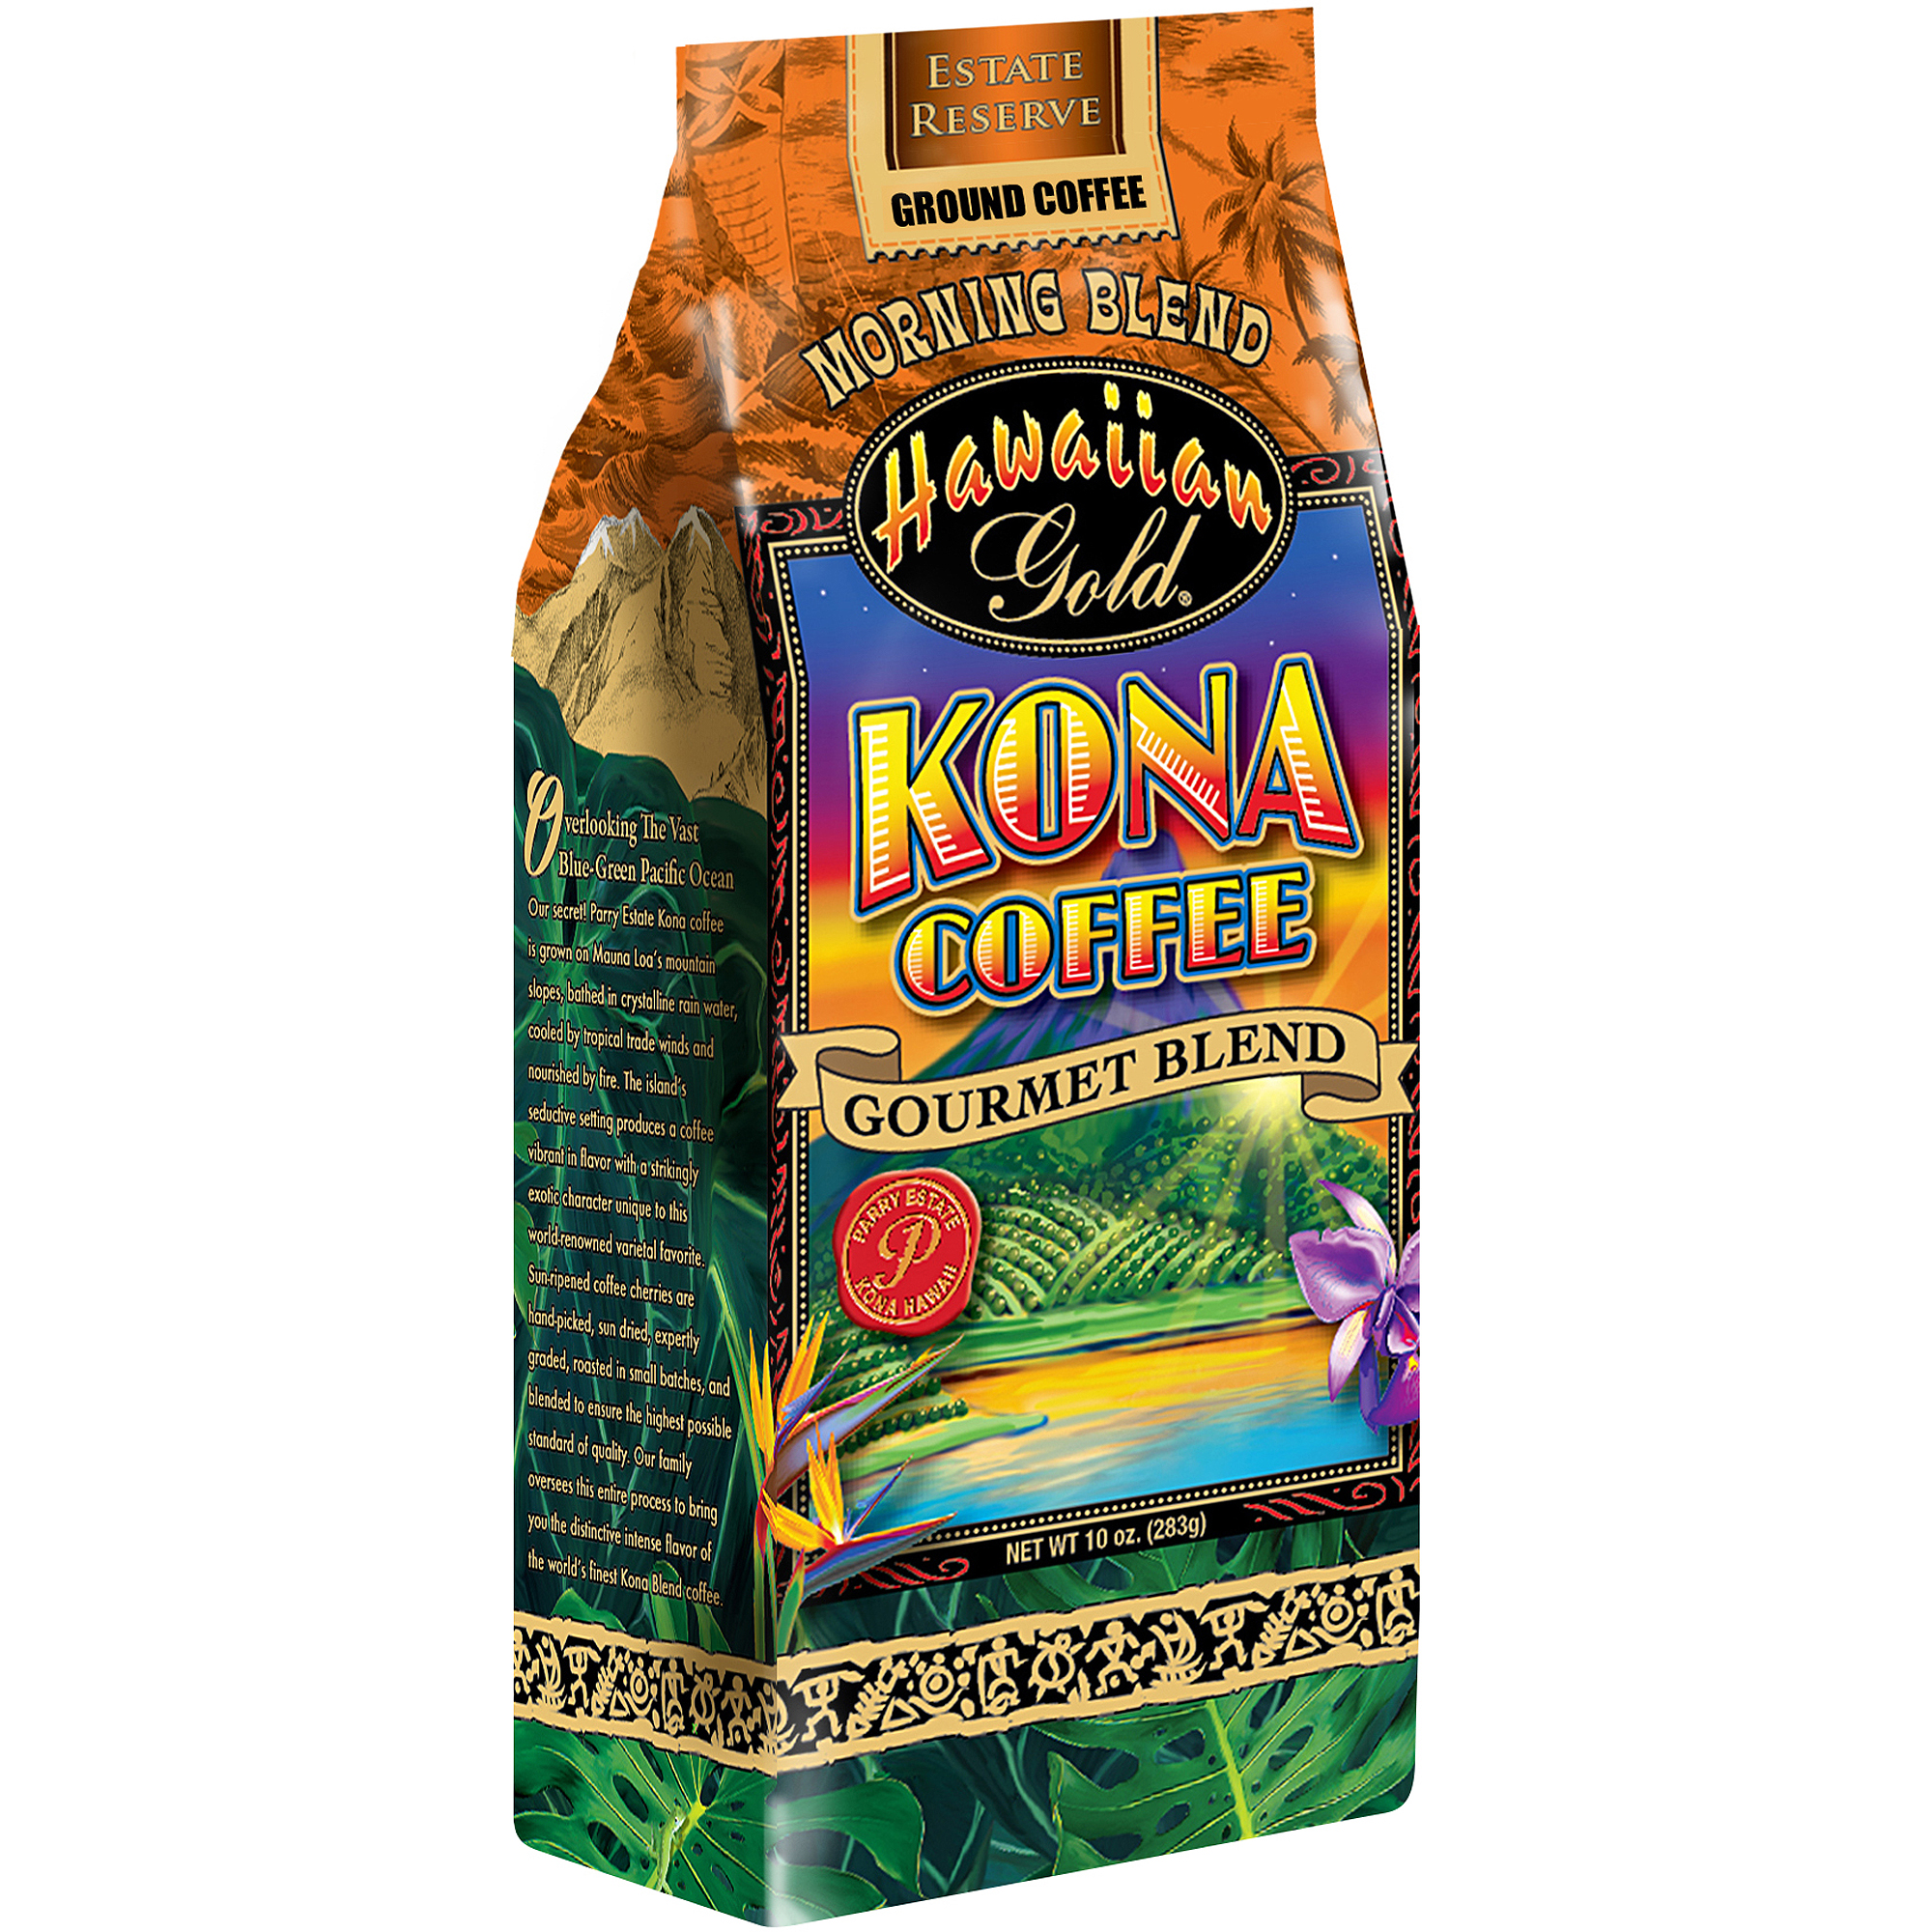 Hawaiian Gold Kona Coffee Morning Blend Ground Coffee, 10 oz